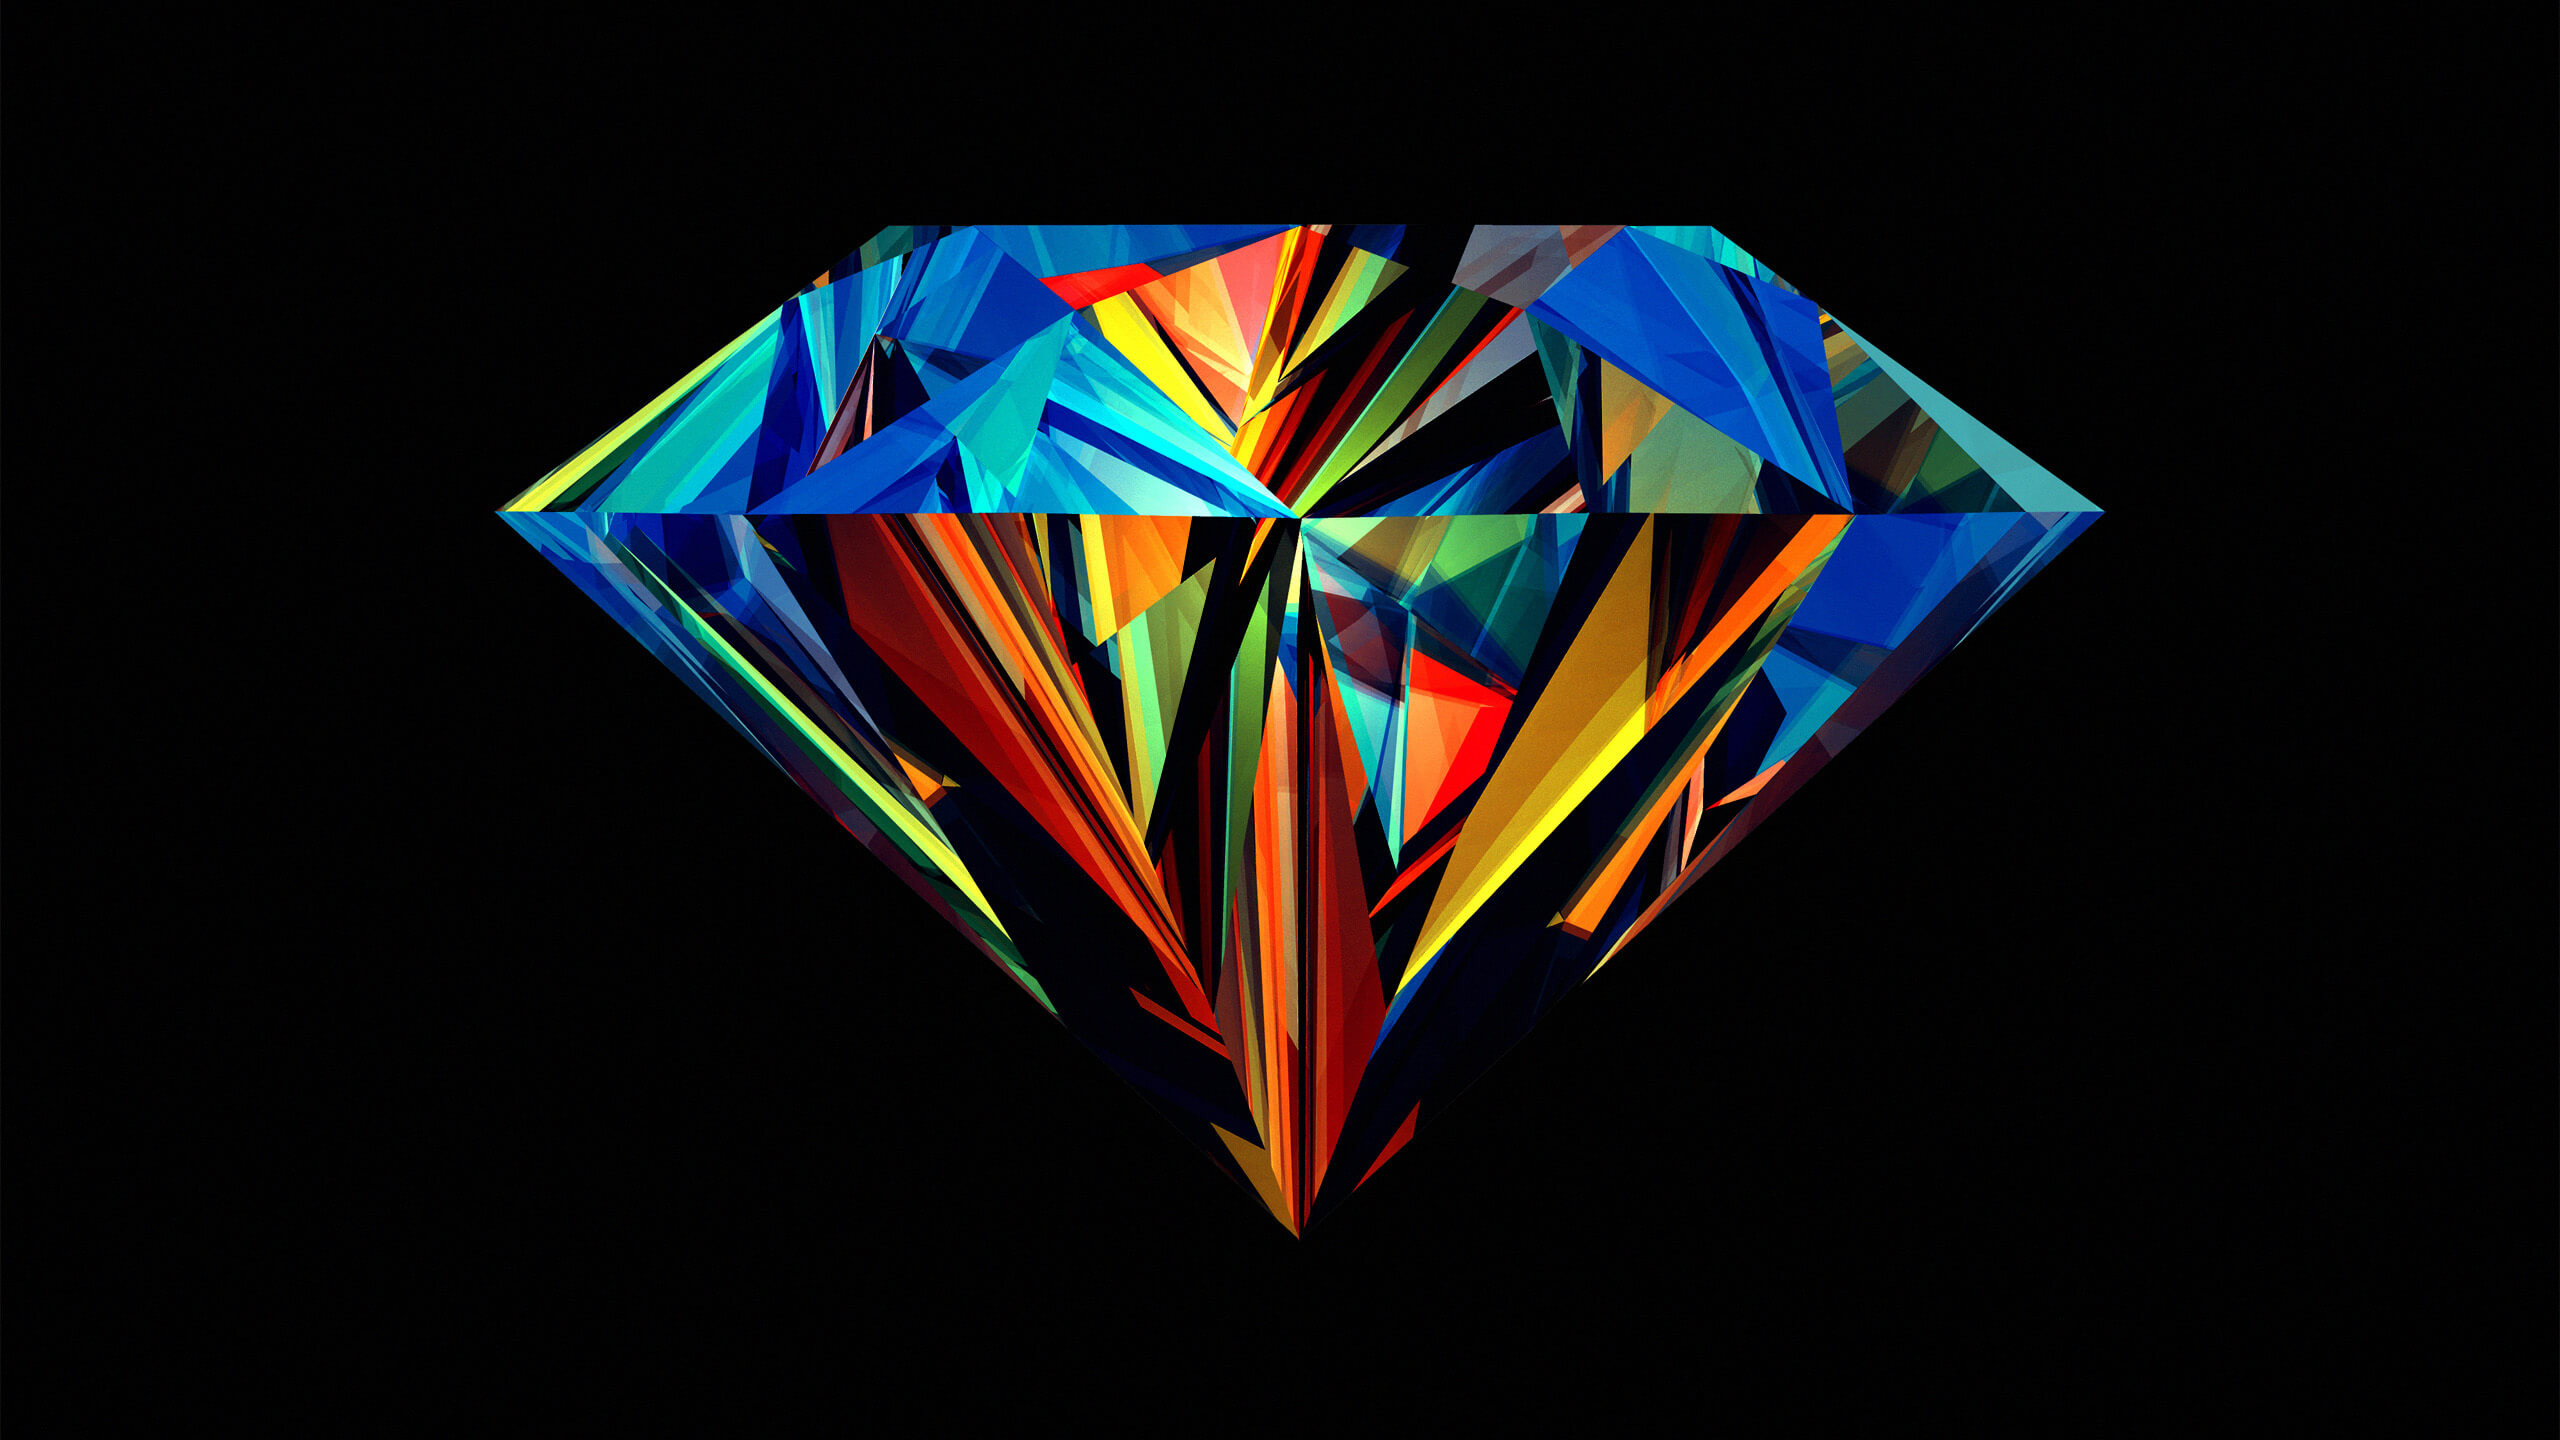 2560x1440 Colorful Diamond HD wallpaper for Youtube Channel Art - HDwallpapers .